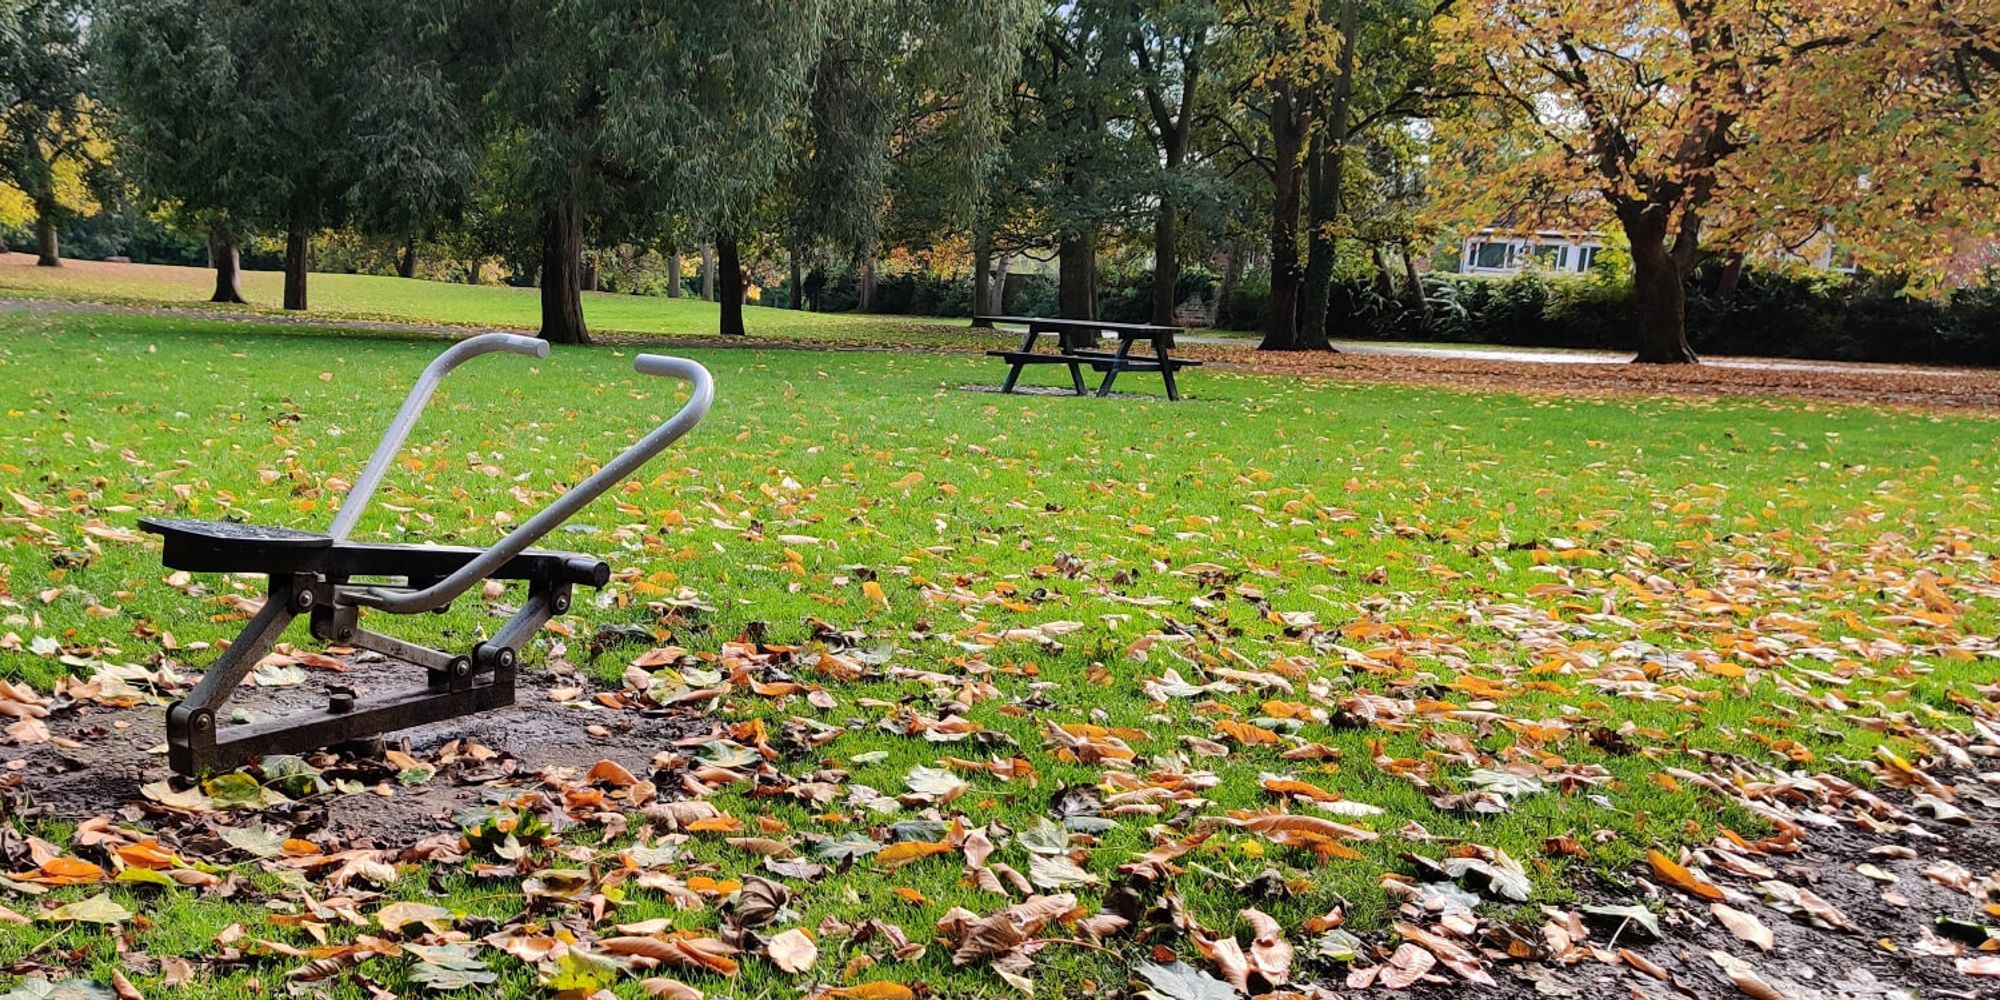 Rowing machine in Burley park in middle of green field